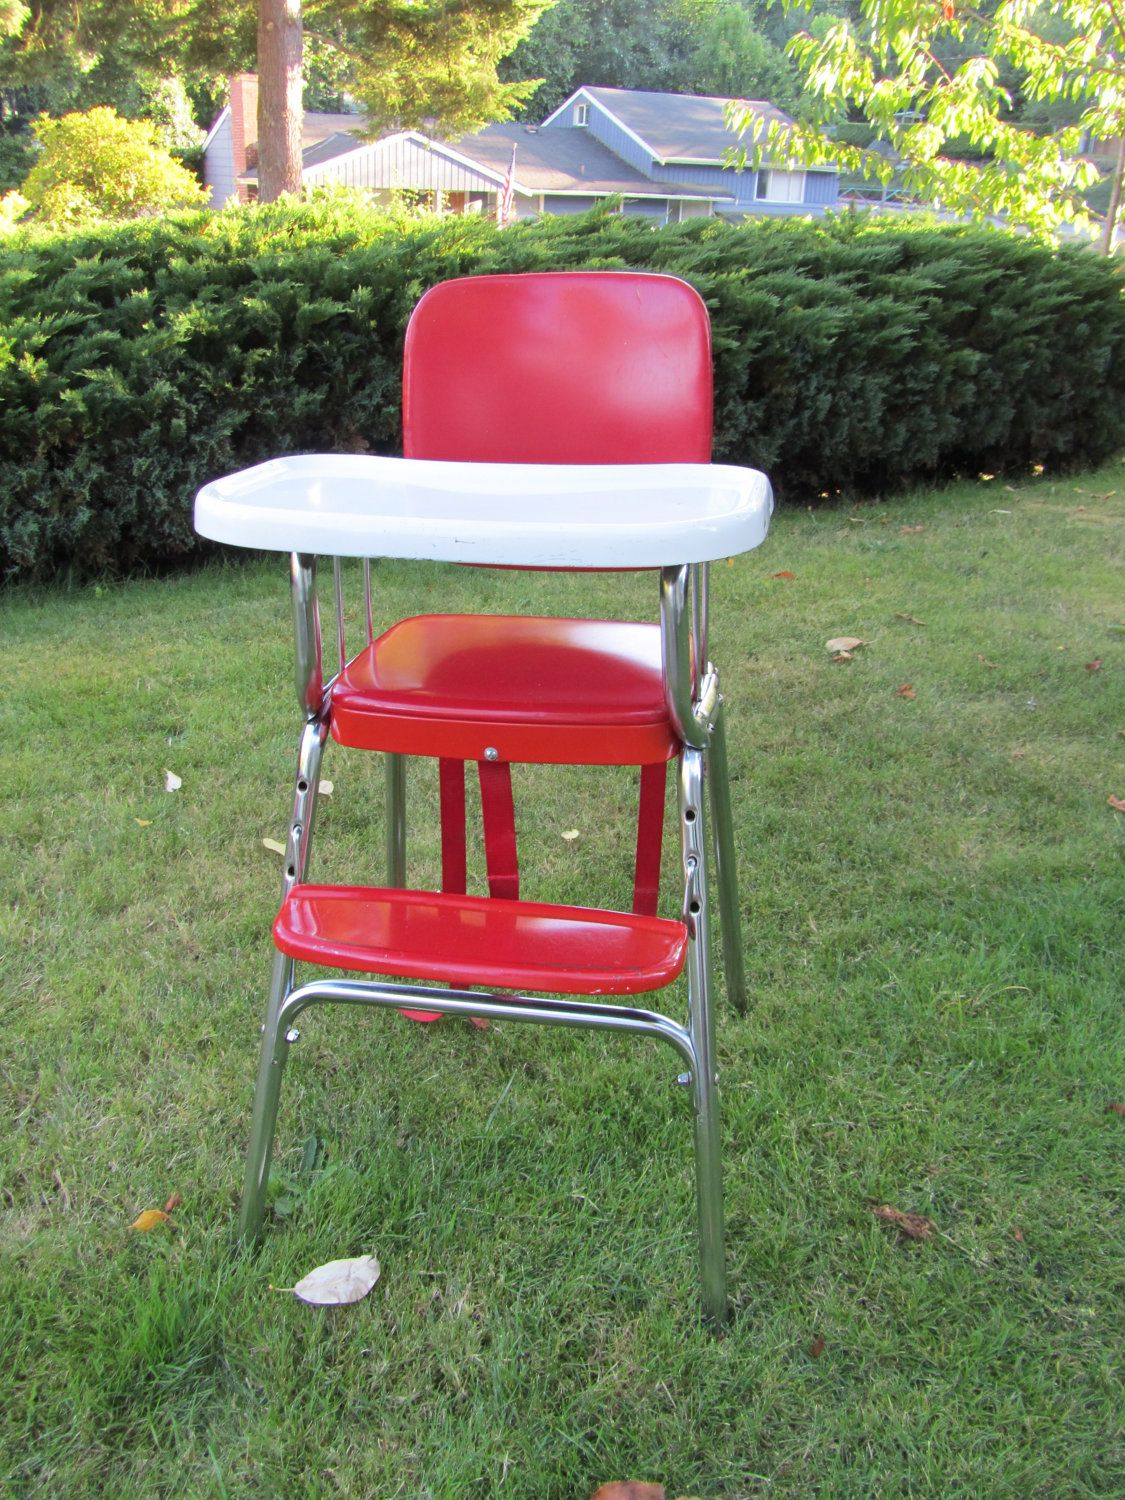 Antique metal high chair - High Chair 1950s Vintage Metal Cherry Red And White By Dipinti 100 00